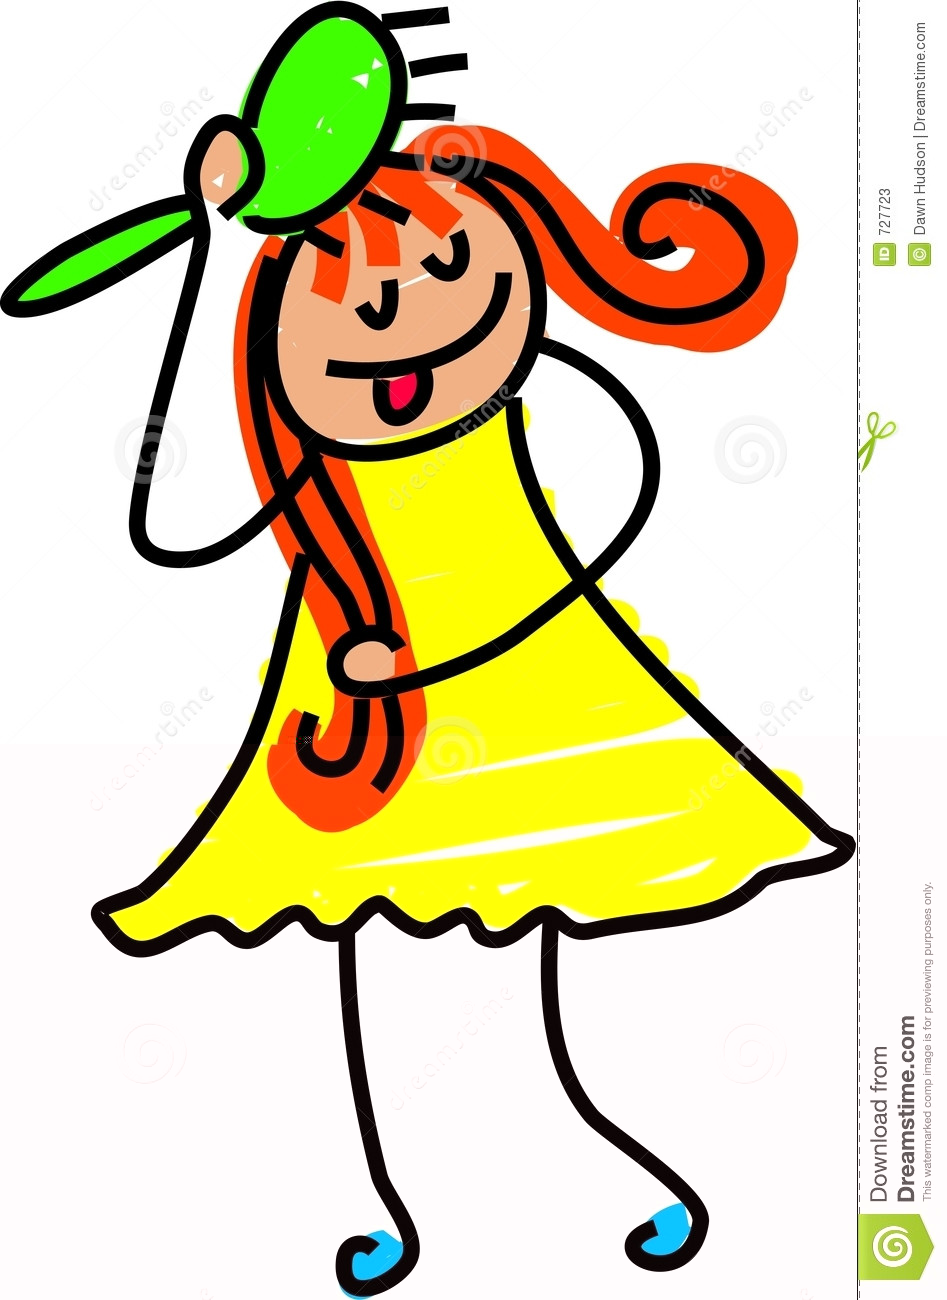 Brush clipart hair brush. Brushing hairbrush girl in